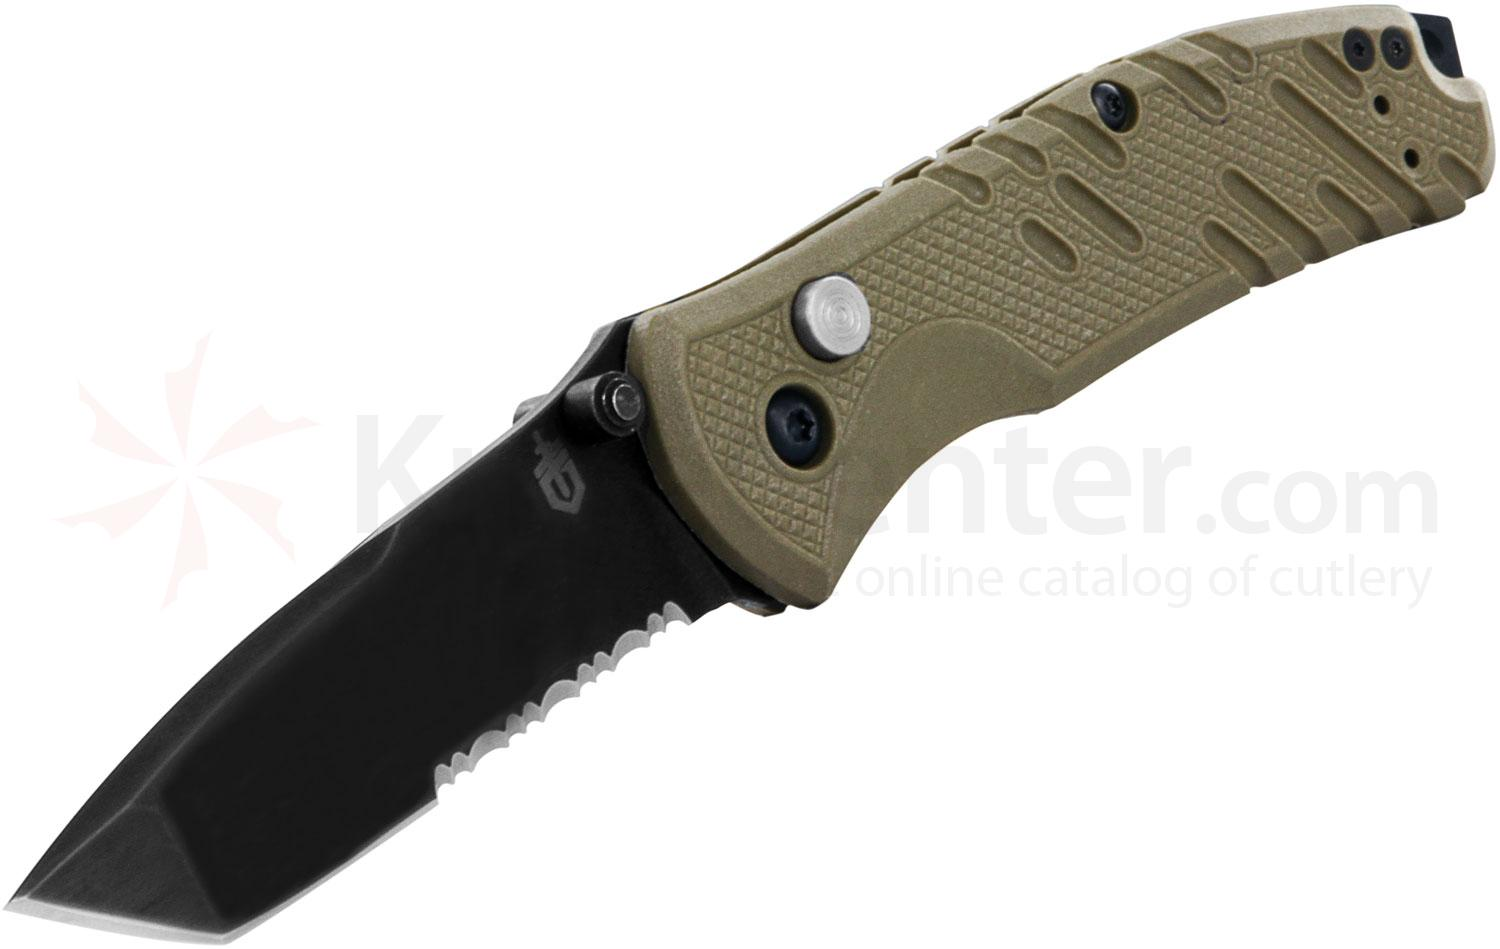 Gerber Propel Downrange AO Assisted 3.51 inch Black S30V Tanto Combo Blade, Tan G10 Handles (30-000725)